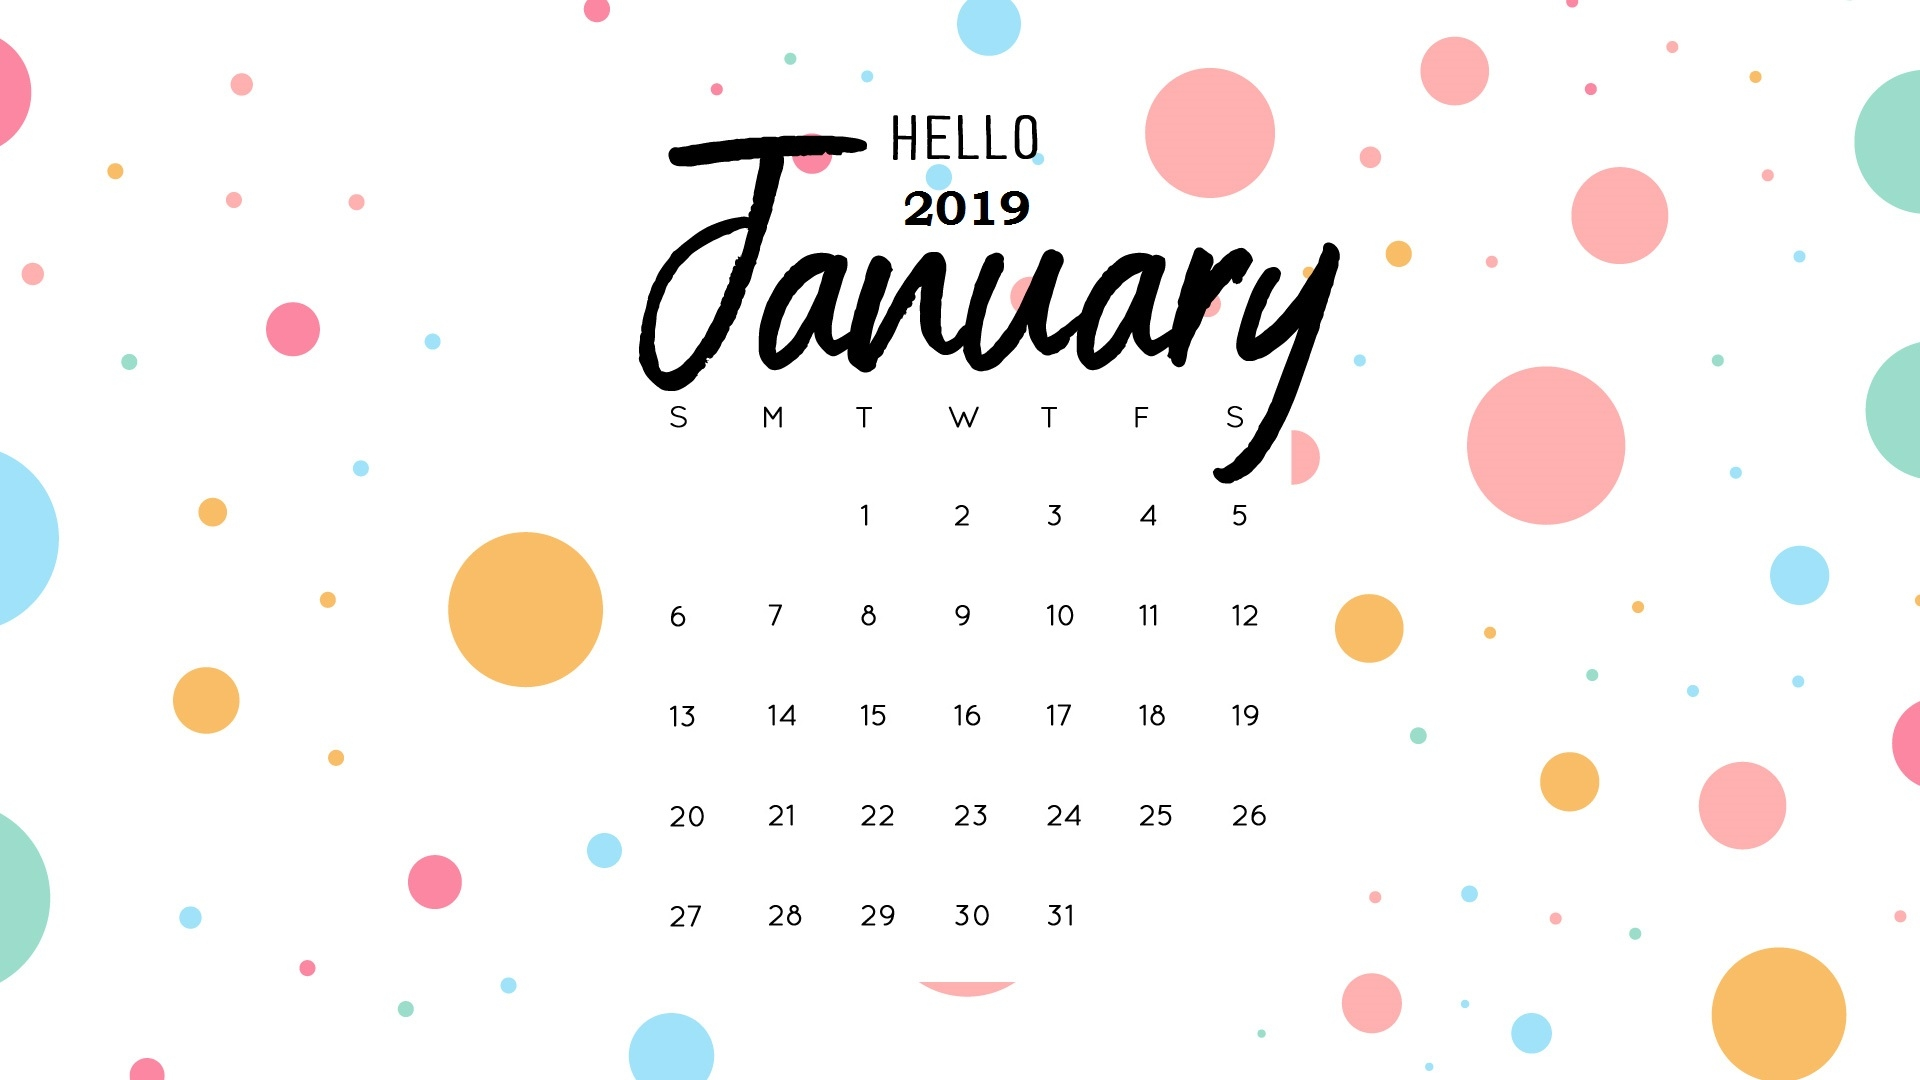 january 2019 calendar templates all about january calendar::January 2019 Calendar USA